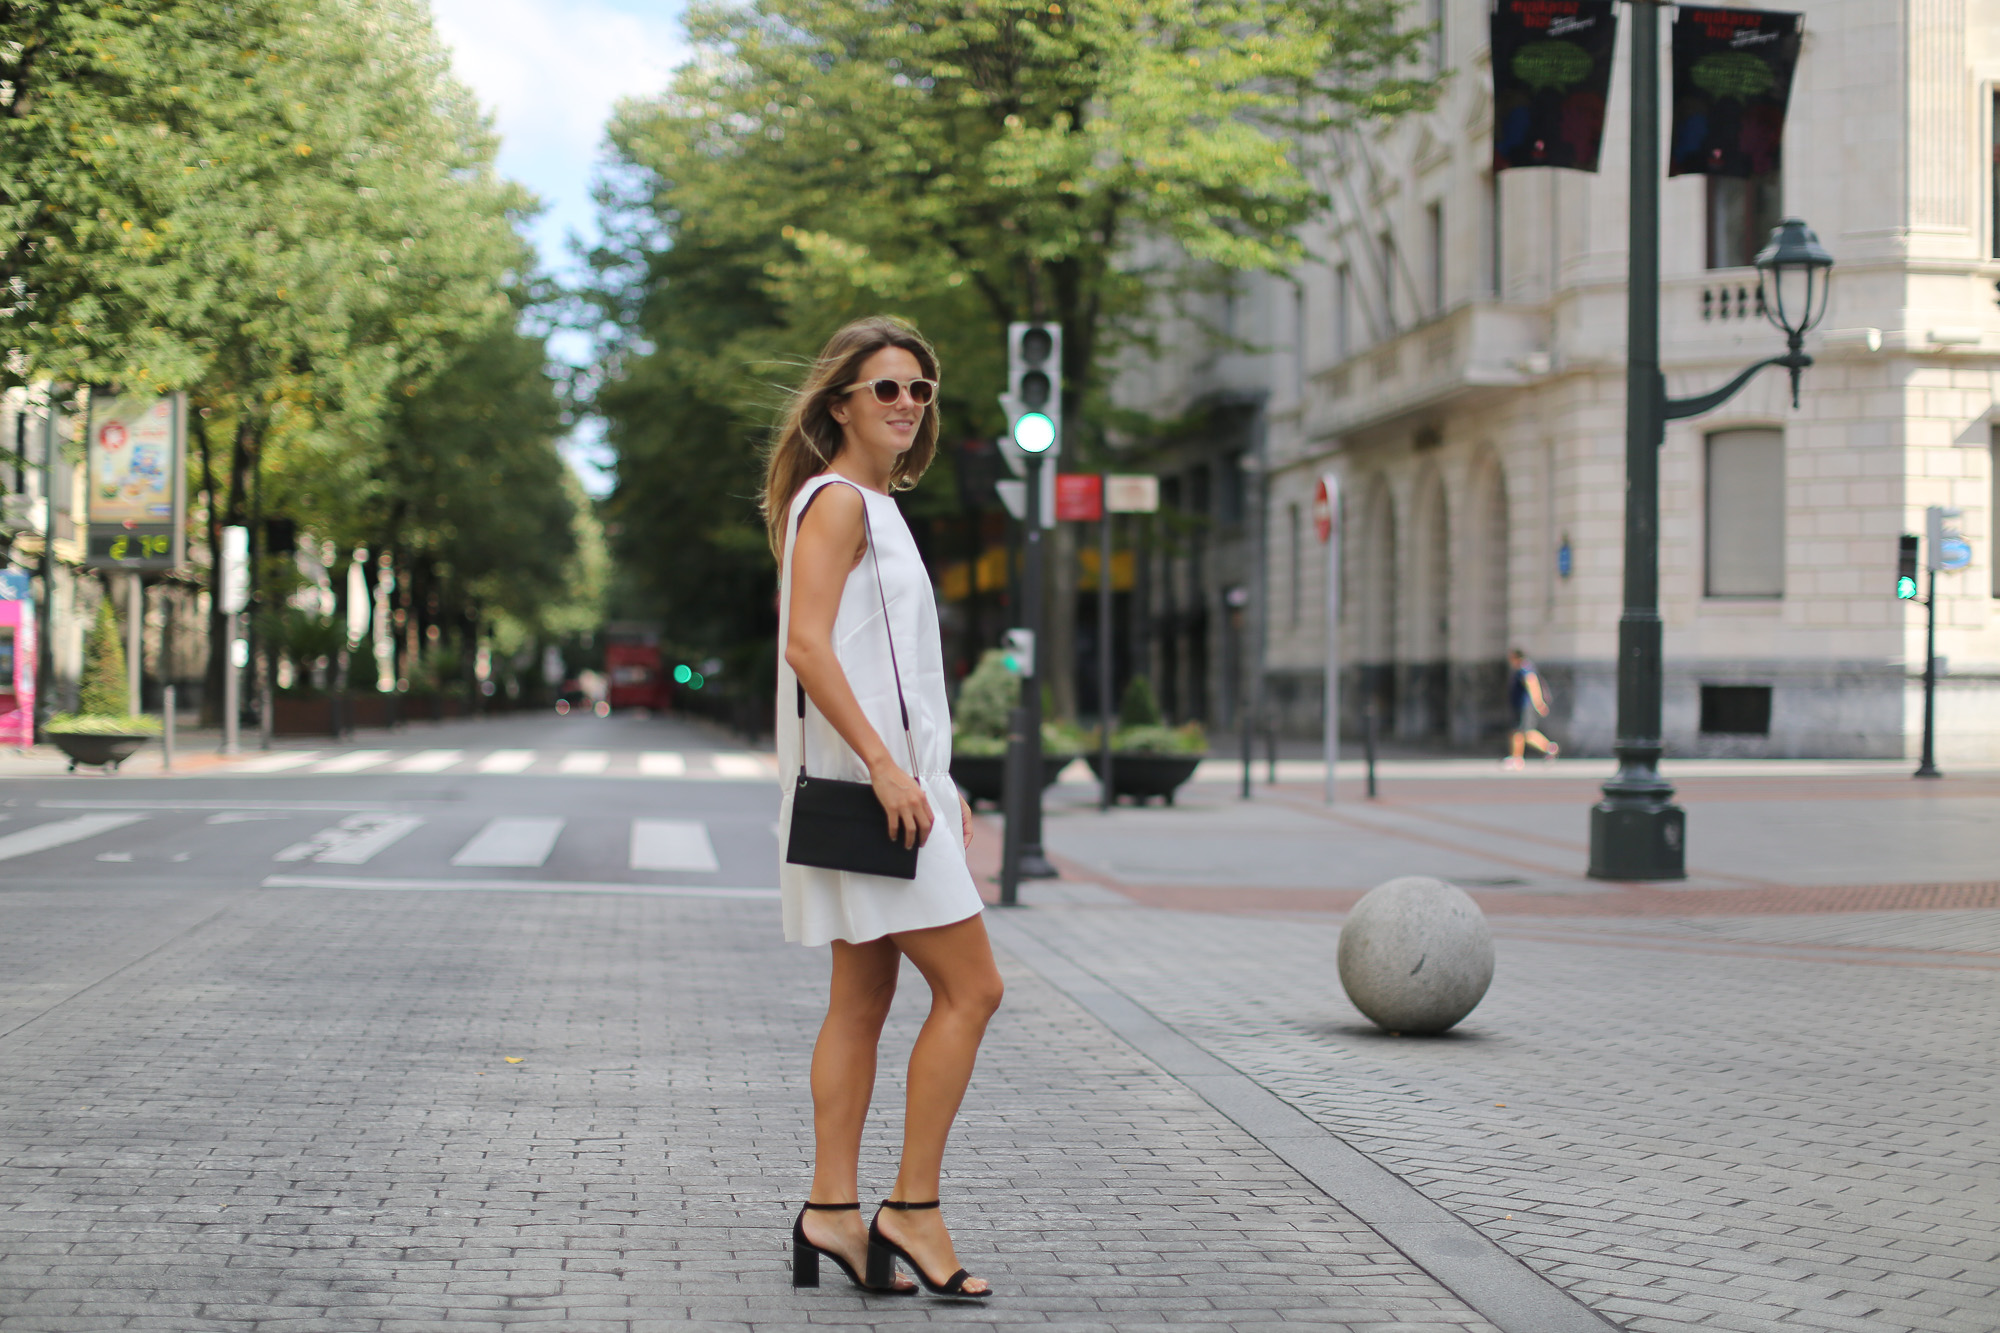 Clochet_h&m_trend_white_neoprene_dress_-1-2